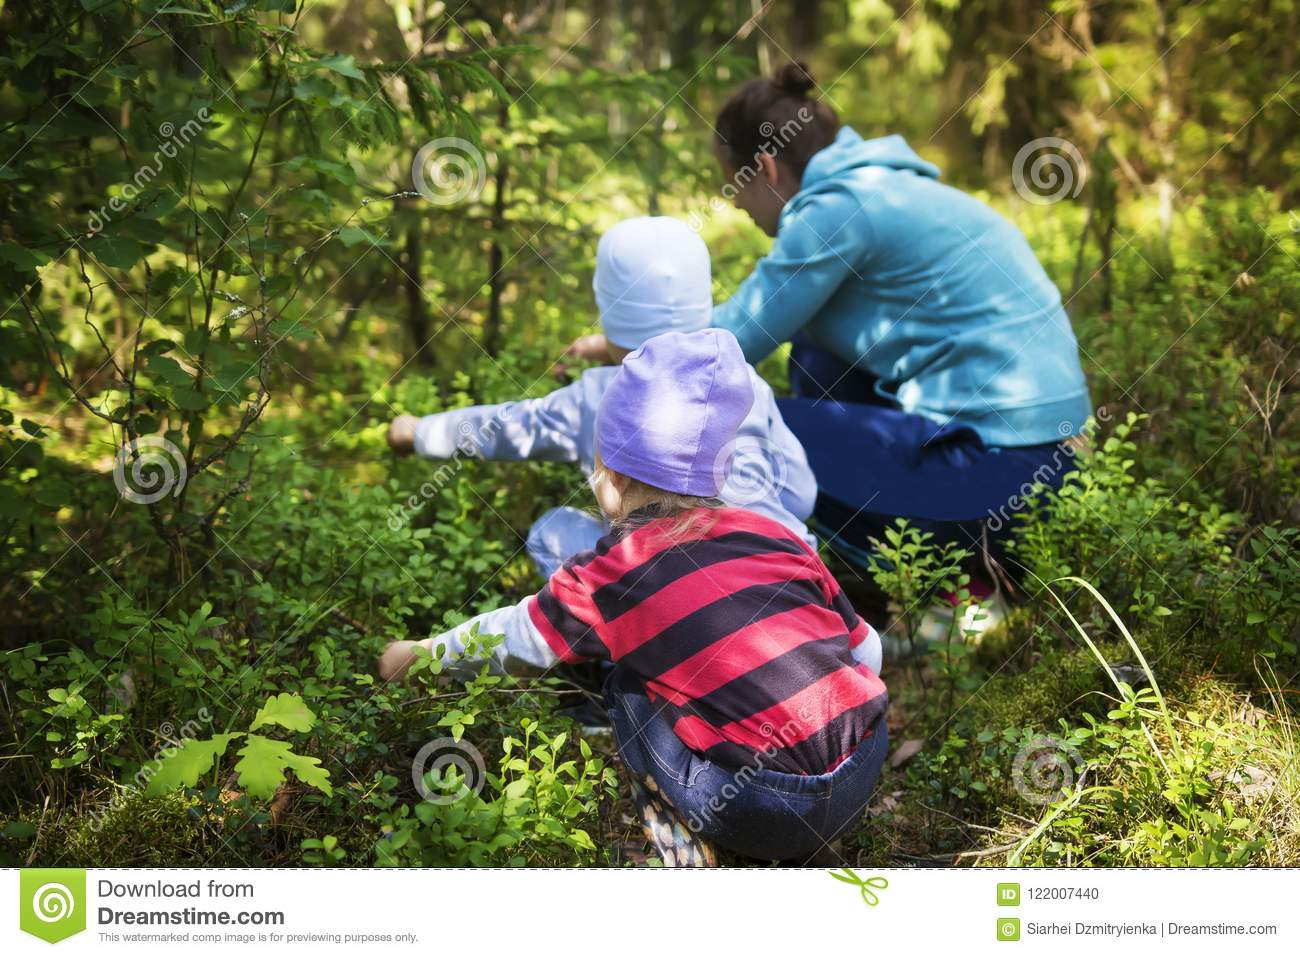 Mom and children take blueberries in a green summer forest on a bright sunny day. The family gathers berries in the forest